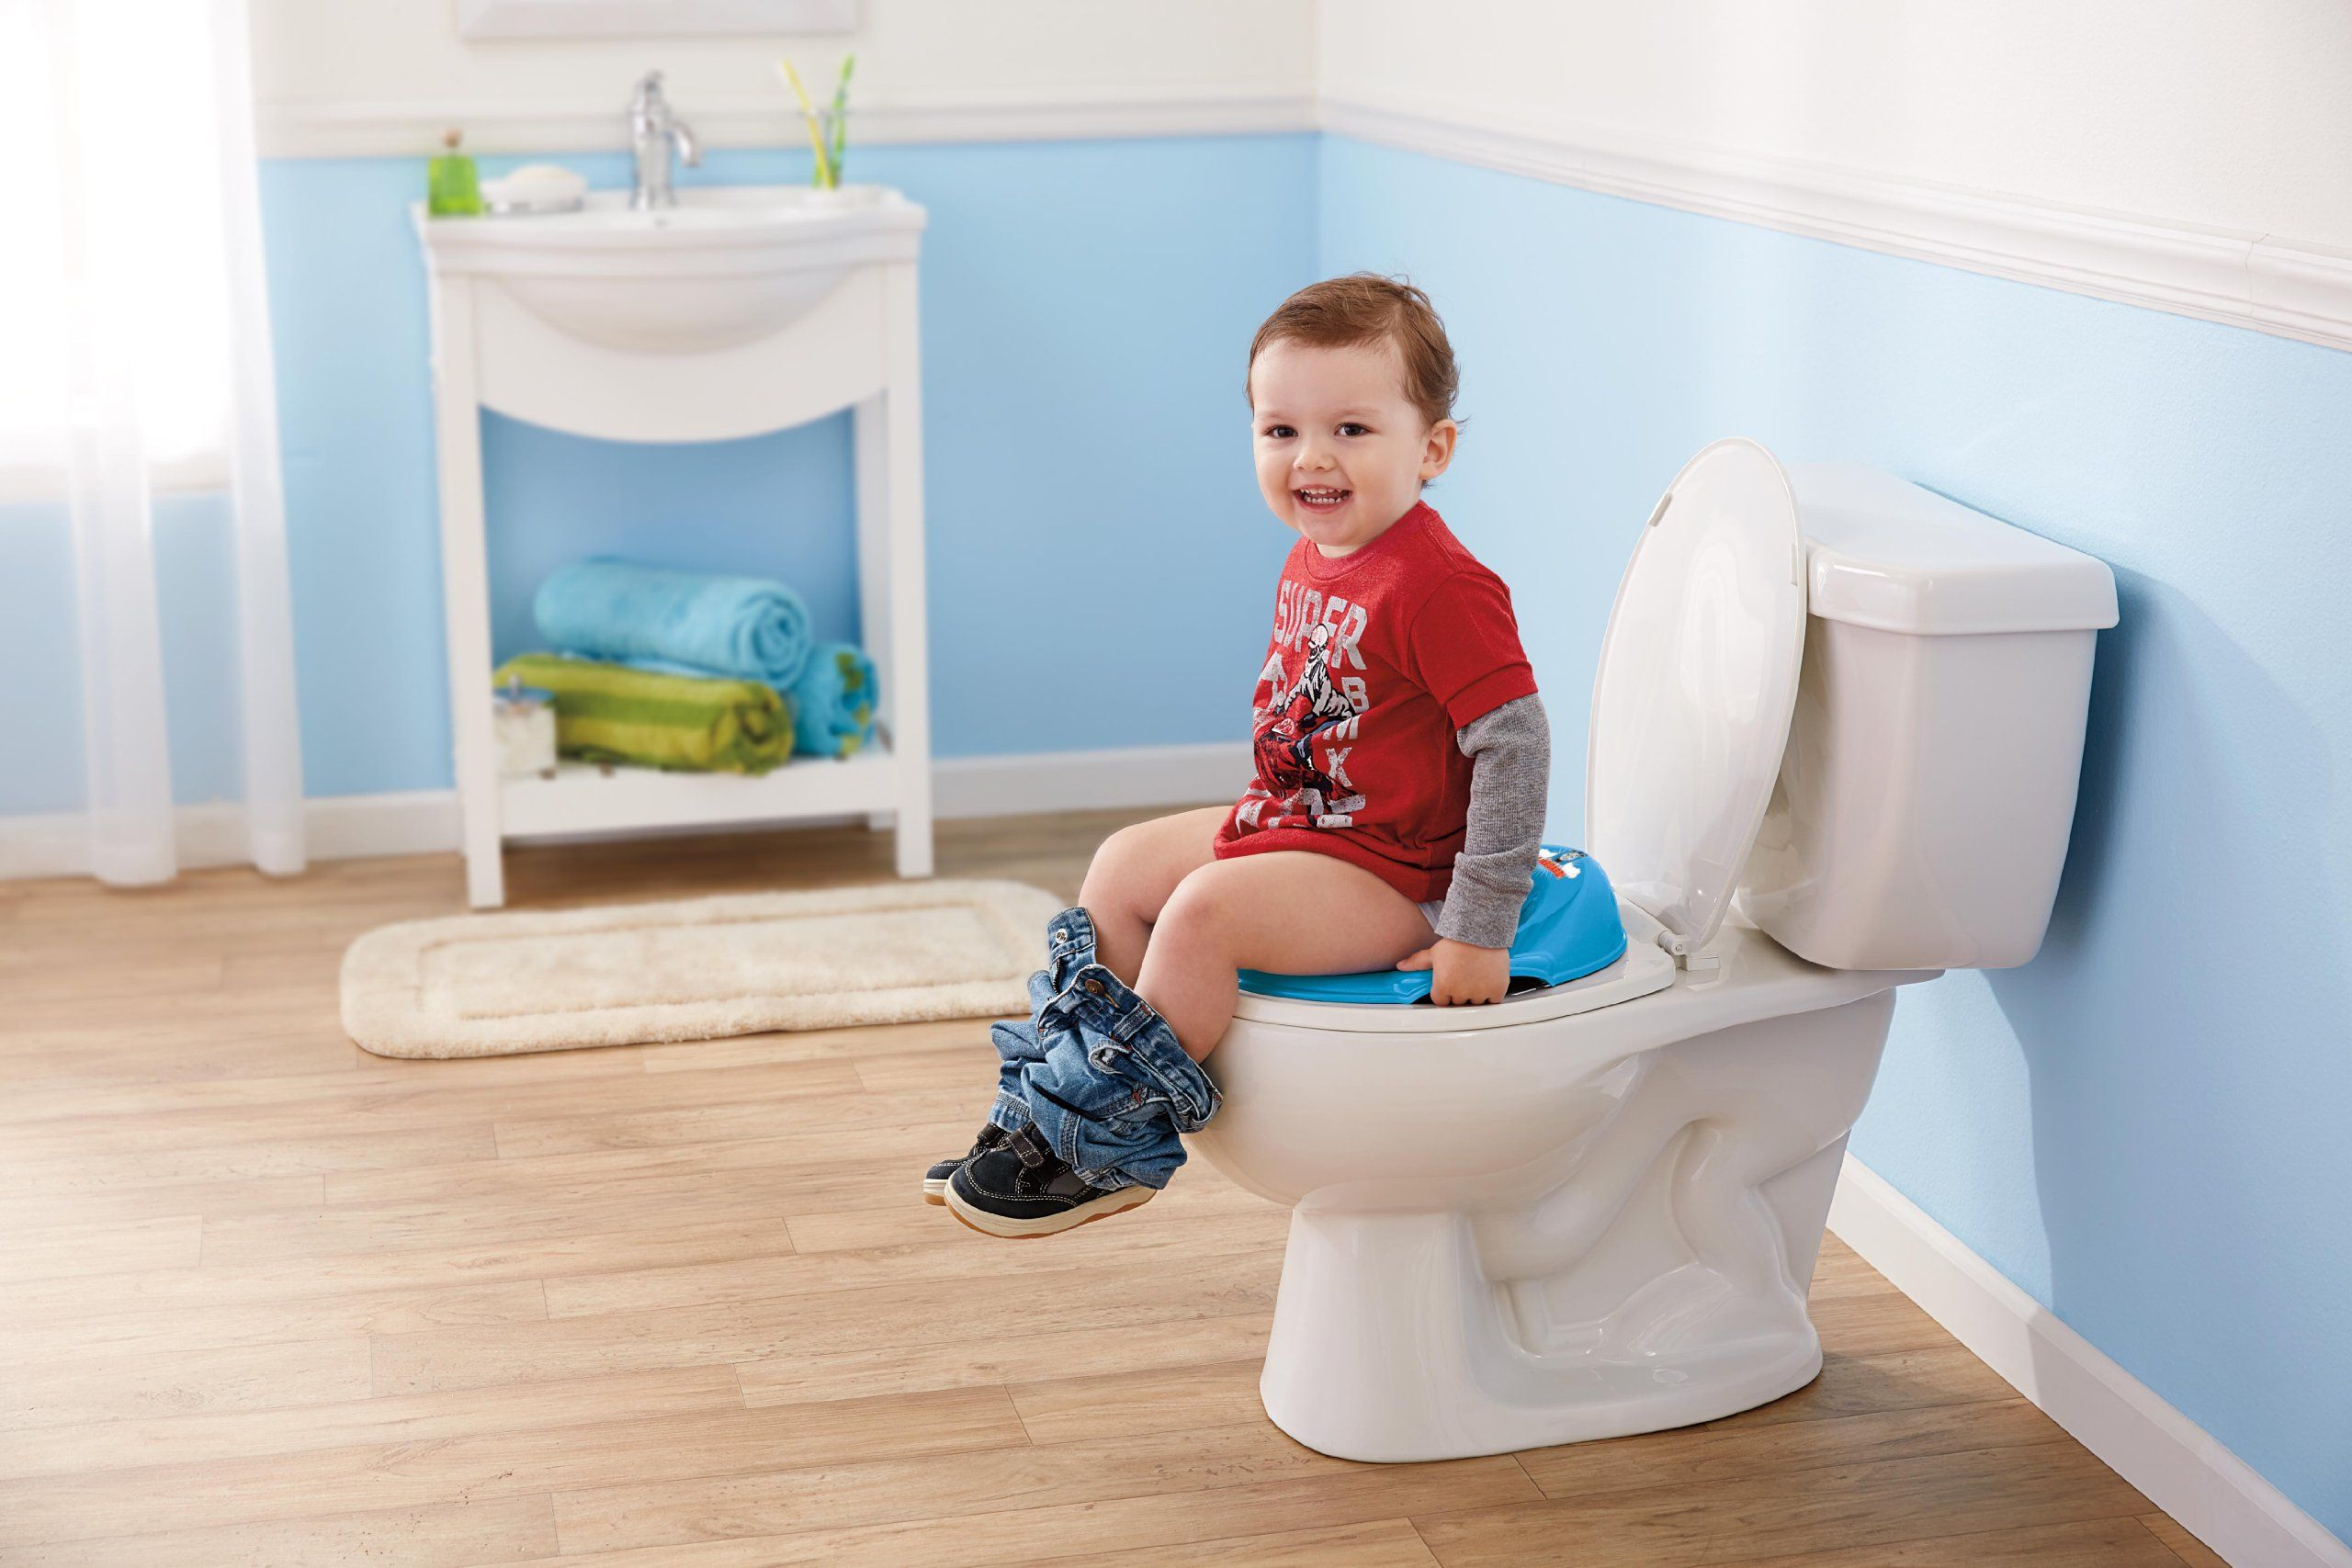 Cuddle Baby 2nd Generation Potty Training Boy Urinal with Toddler Training Game